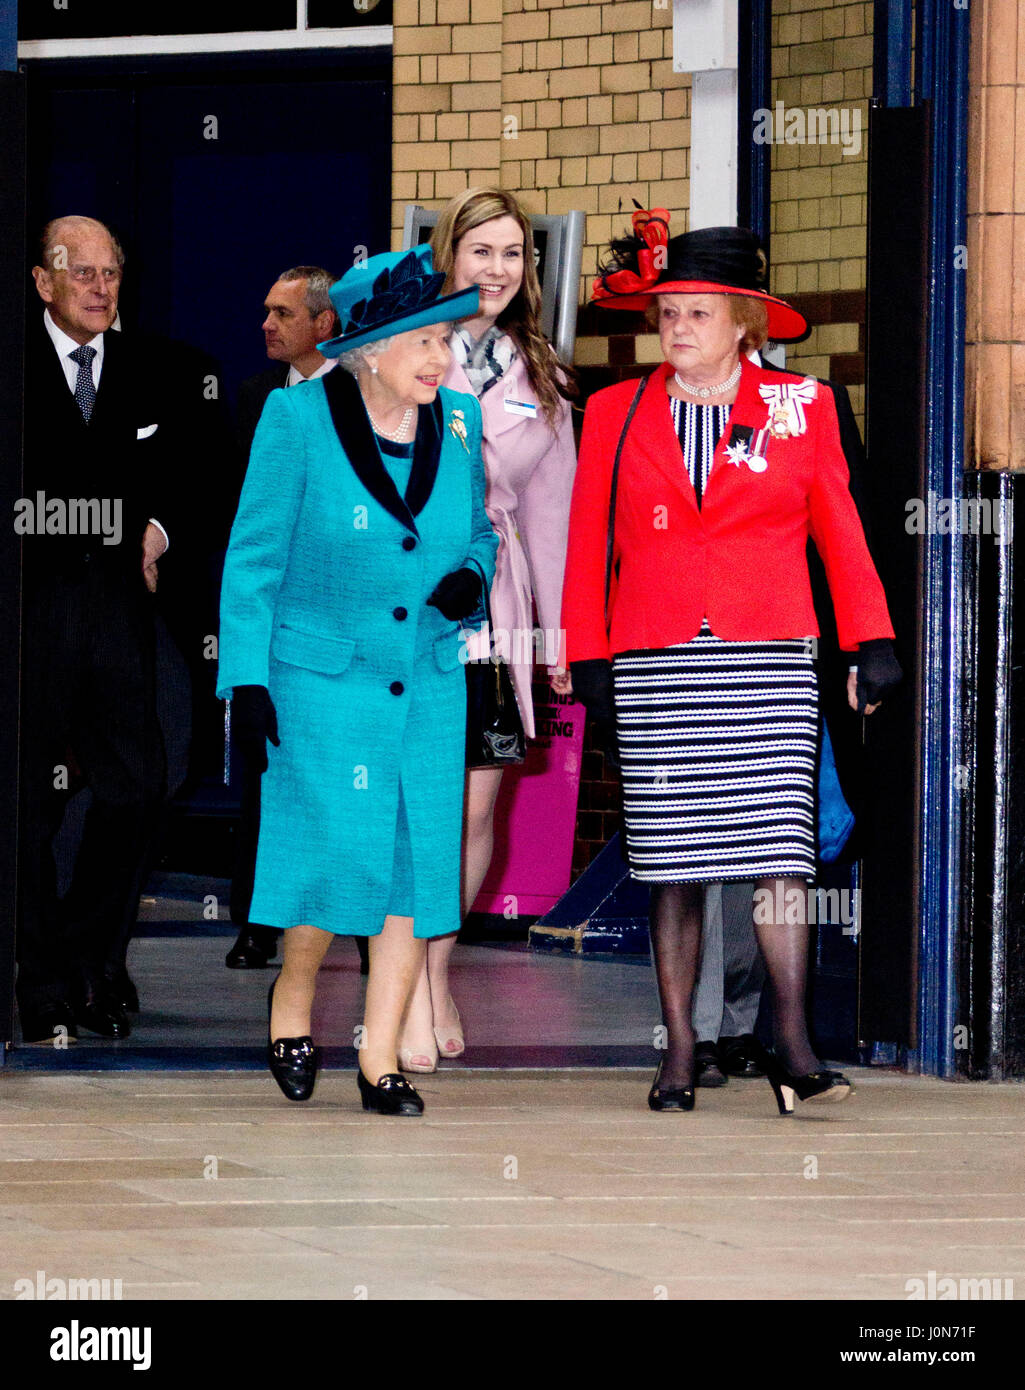 Leicester, UK. Thursday 13th April 2017. Her Majesty Queen Elizabeth II and The Duke or Edinburgh arrive at Leicester - Stock Image